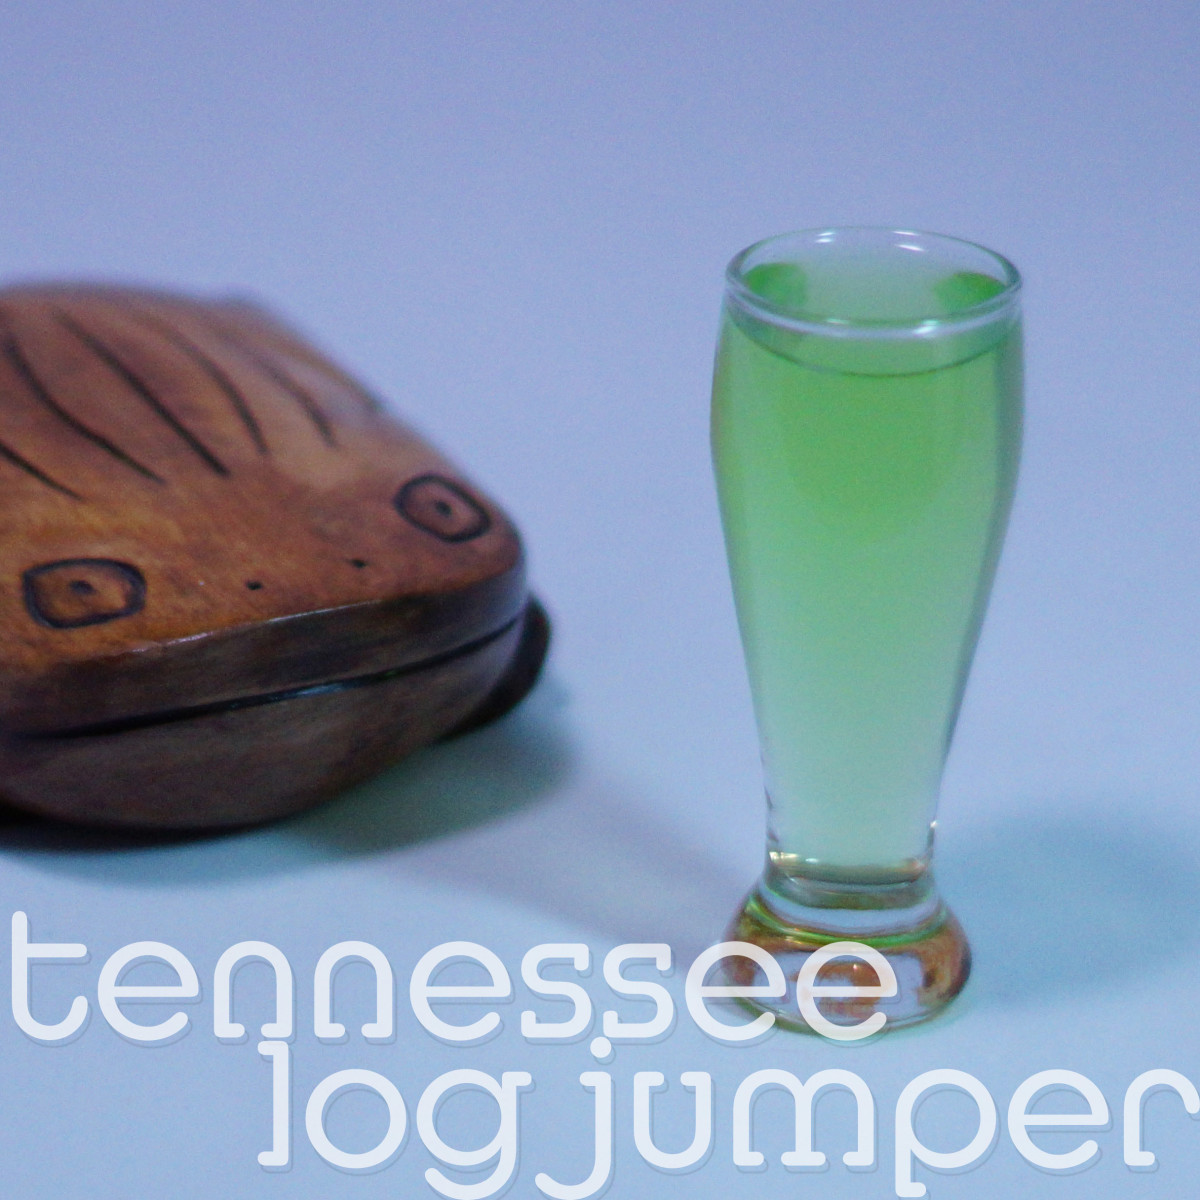 Tennessee Log Jumper